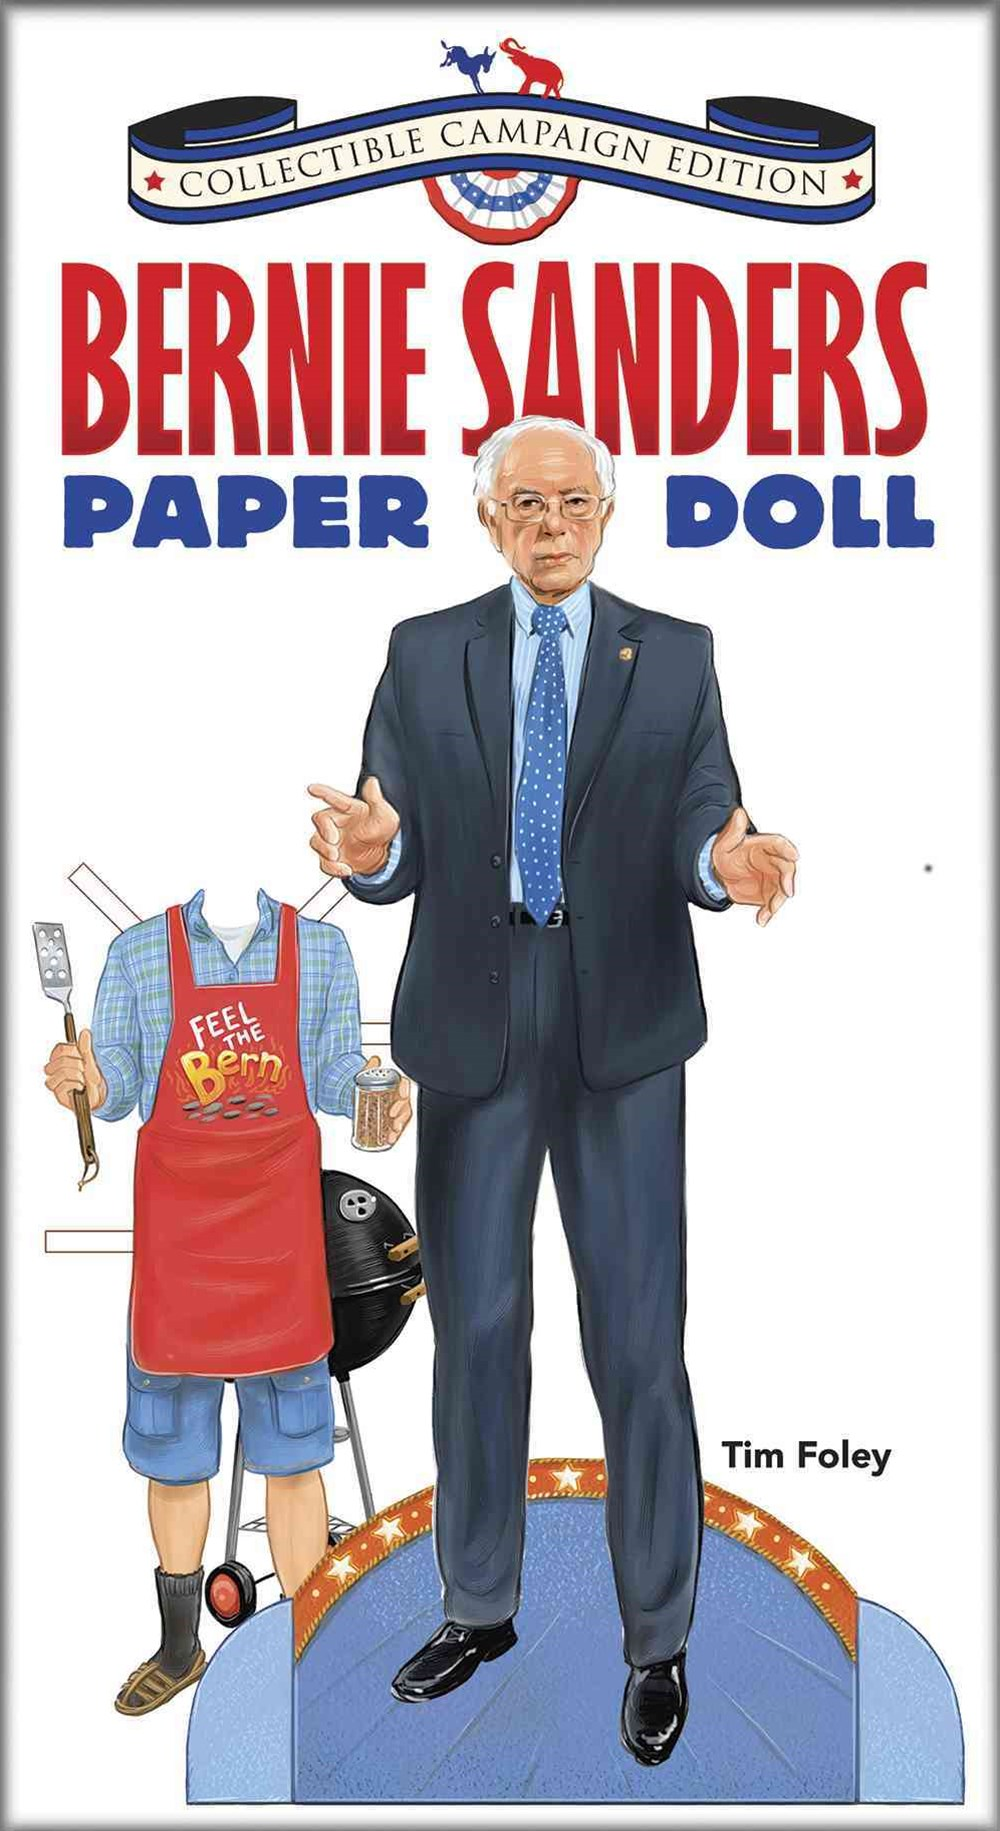 Bernie Sanders Paper Doll Collectible Campaign Edition